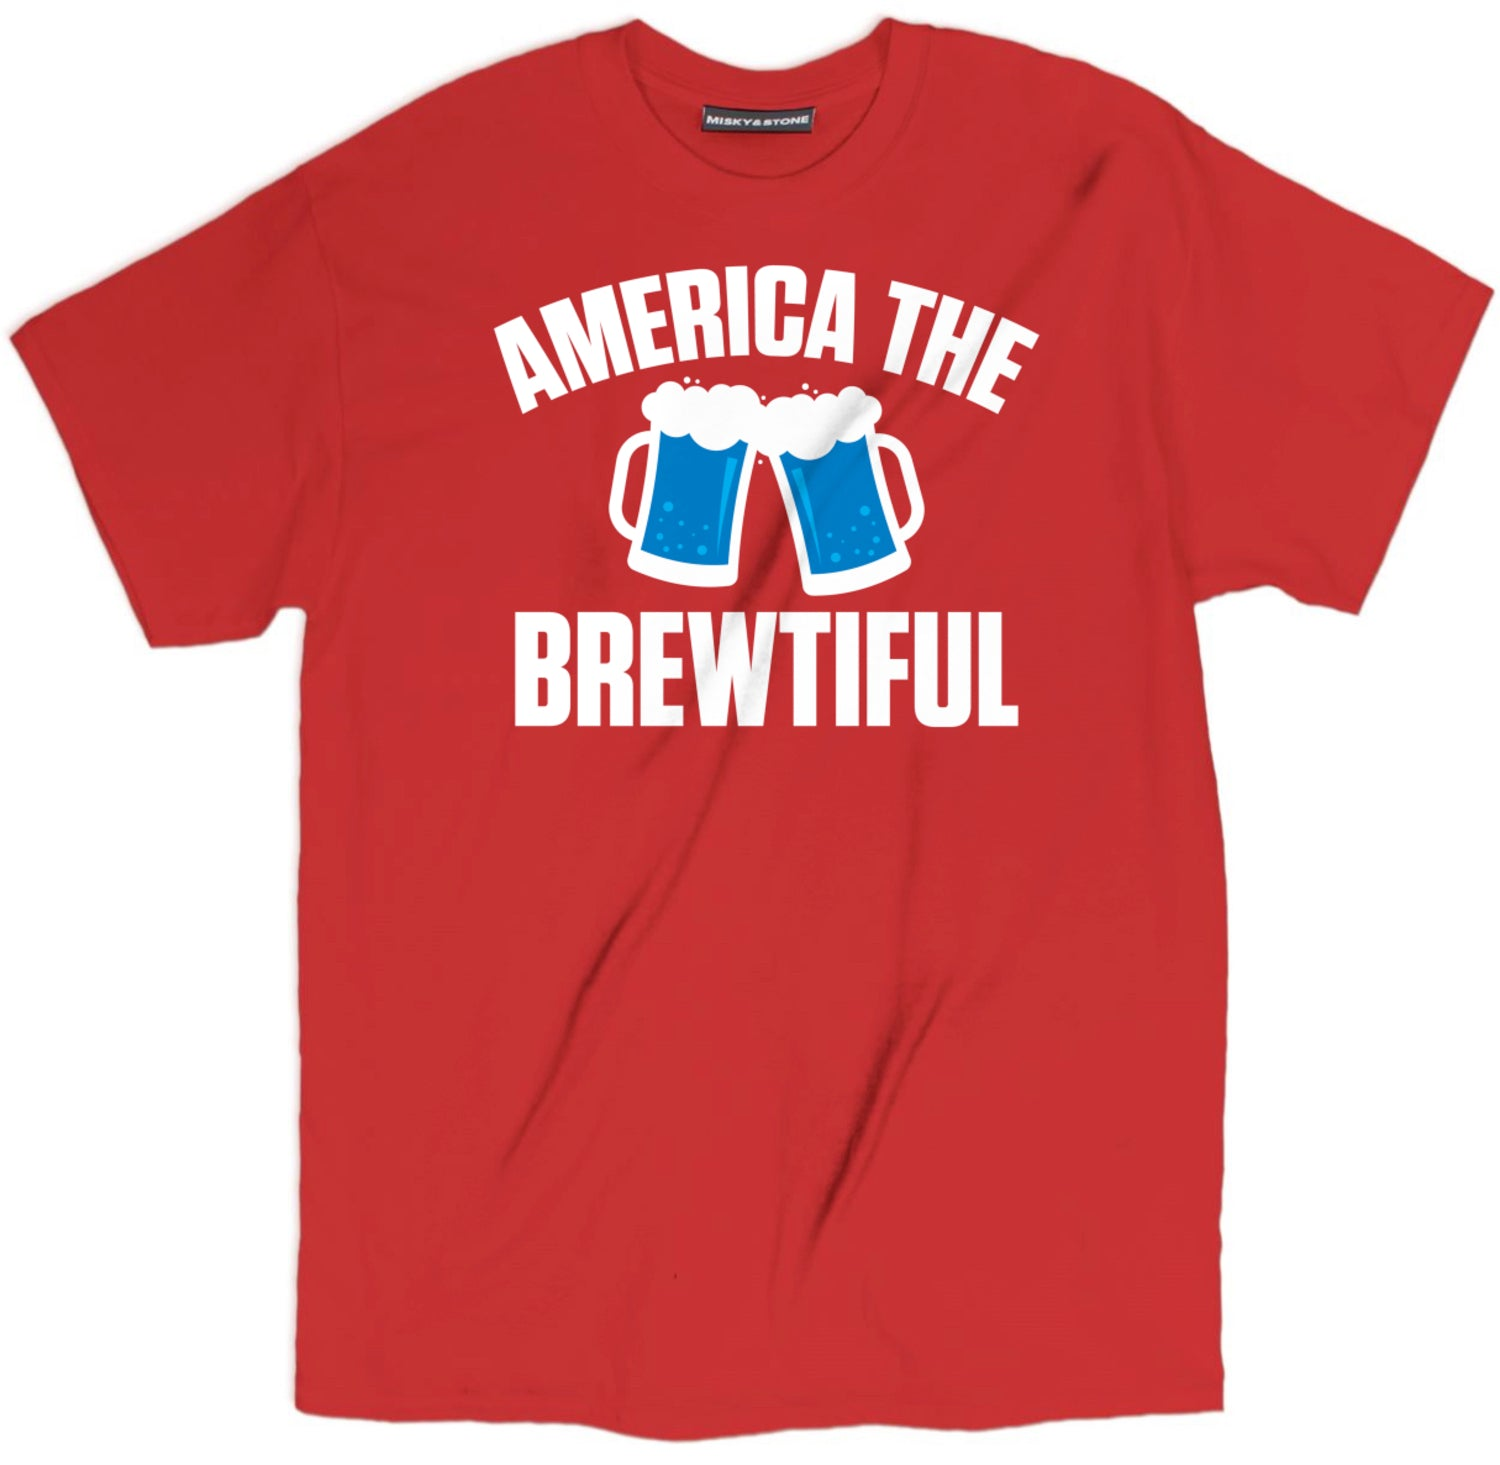 america the brewtiful t shirt, beer shirts, funny beer shirts, beer tees, beer tee shirts, funny beer t shirts, drinking shirts, alcohol shirts, funny drinking shirts,